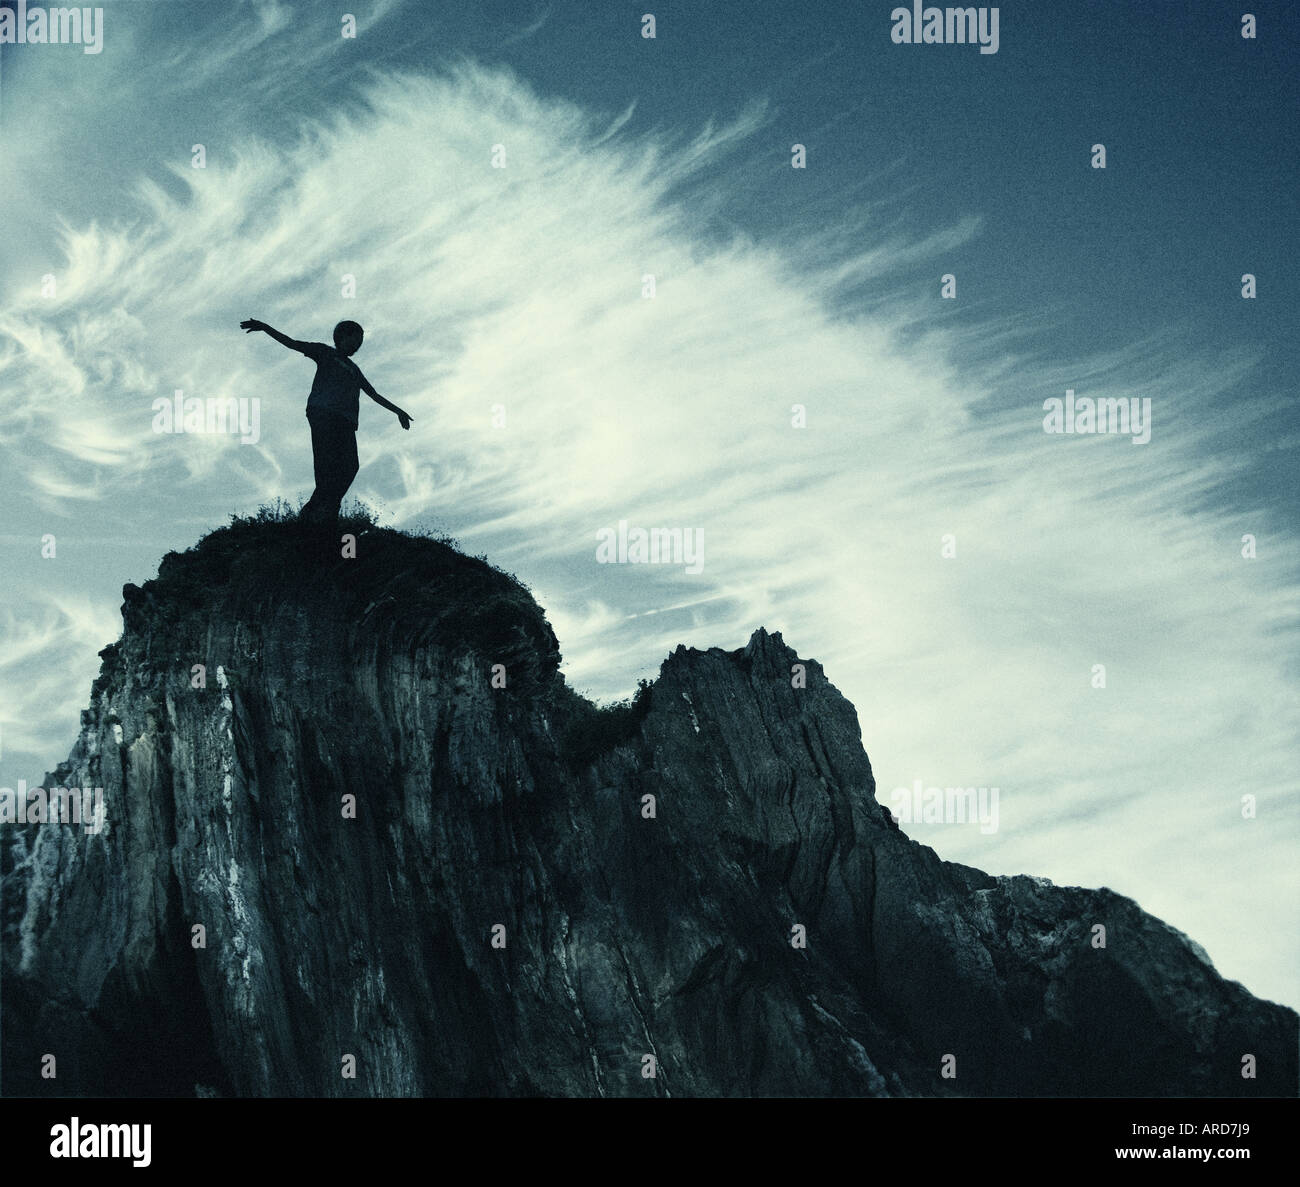 figure stood at top of cliff - Stock Image